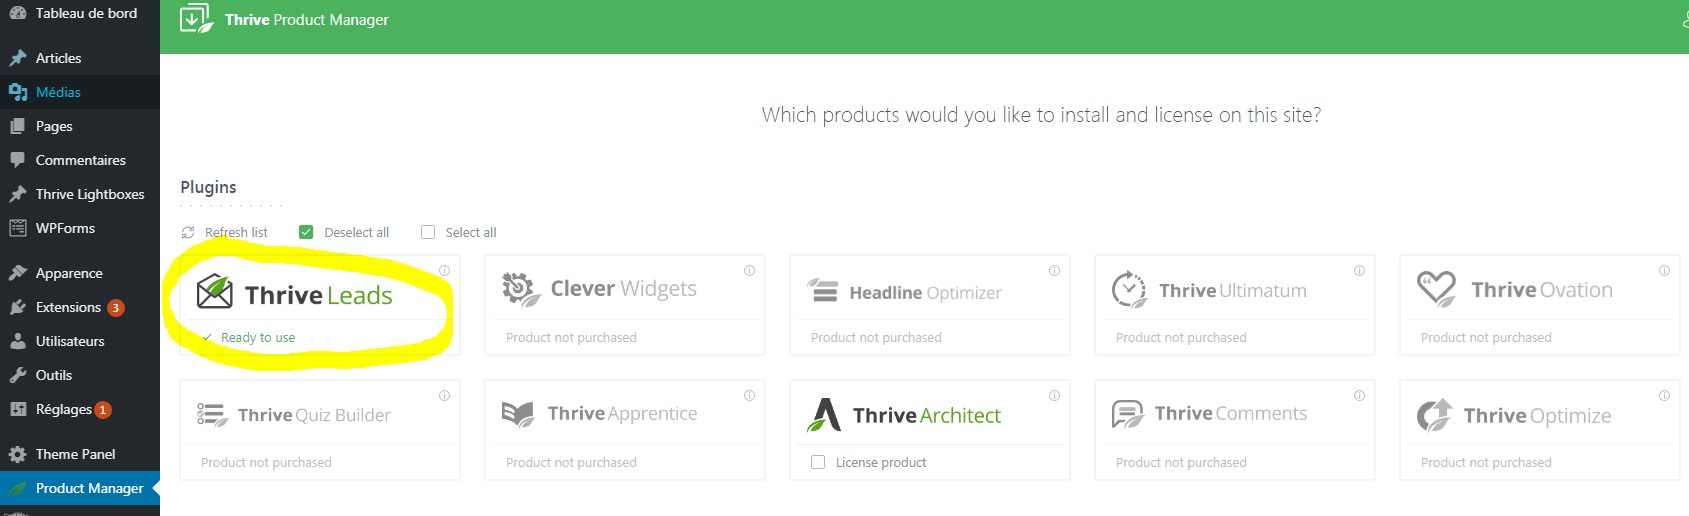 ThriveLeads - Installation via Product Manager